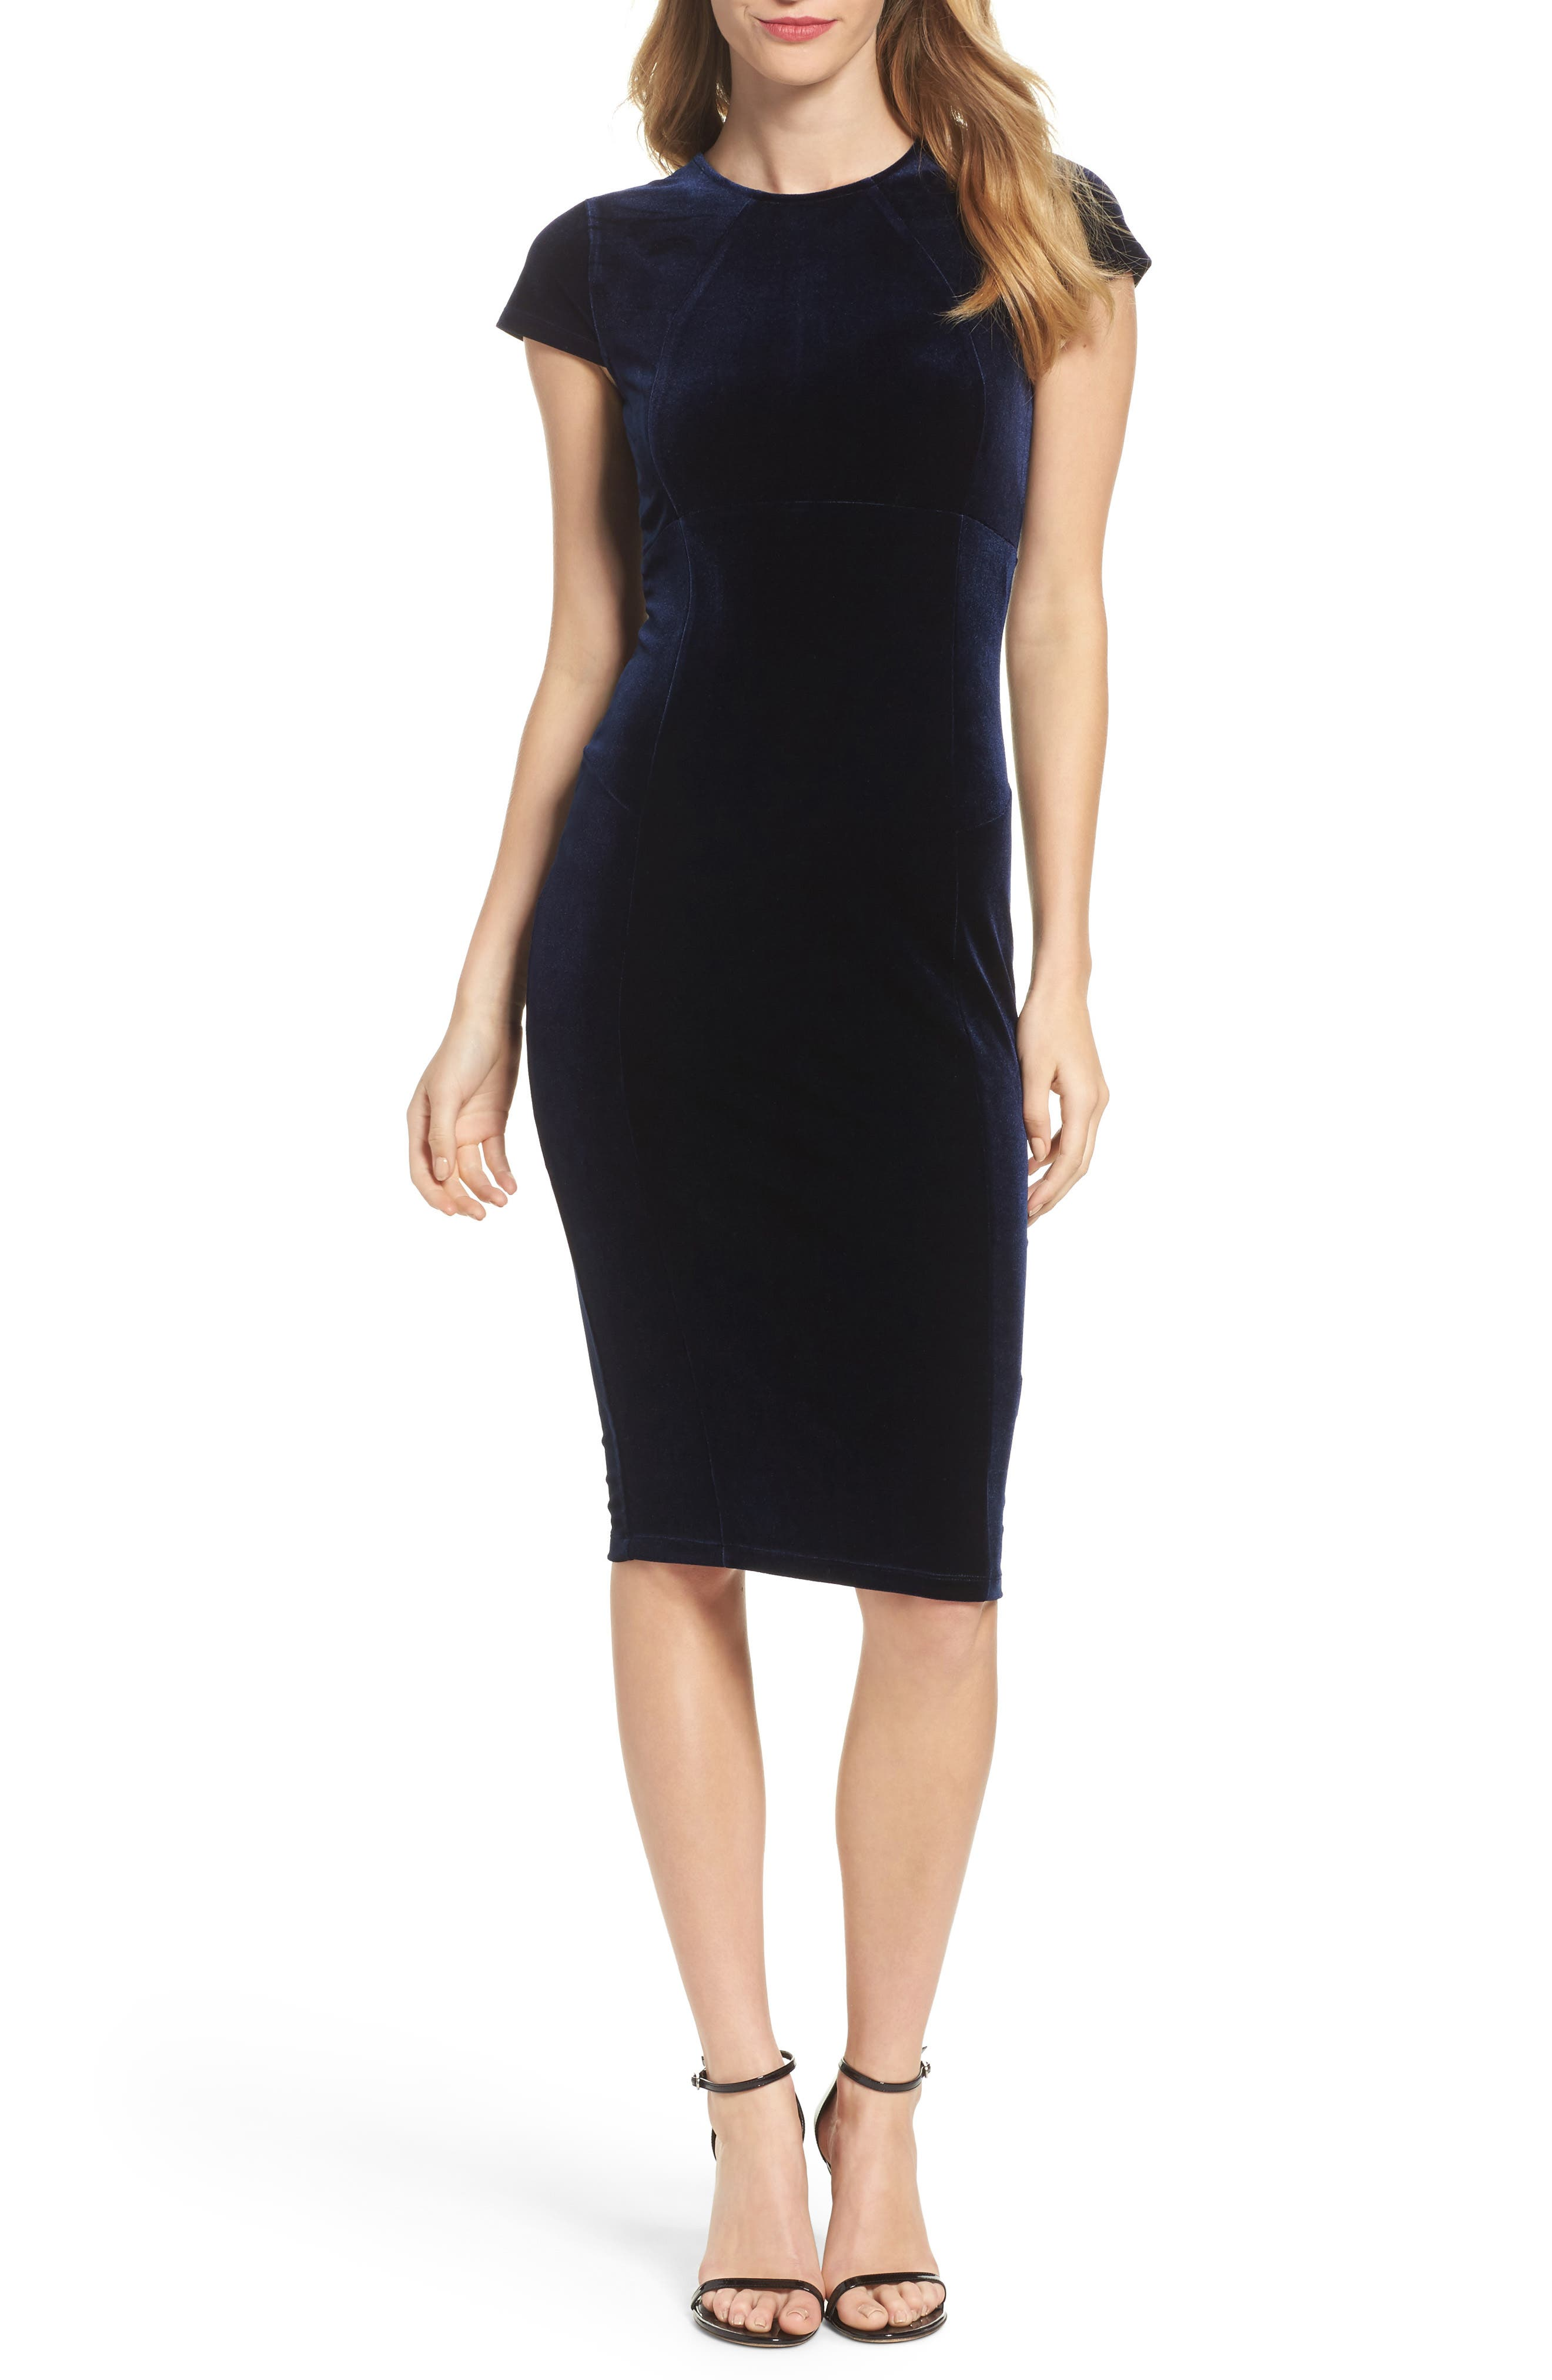 Women's Dresses Work Clothing | Nordstrom